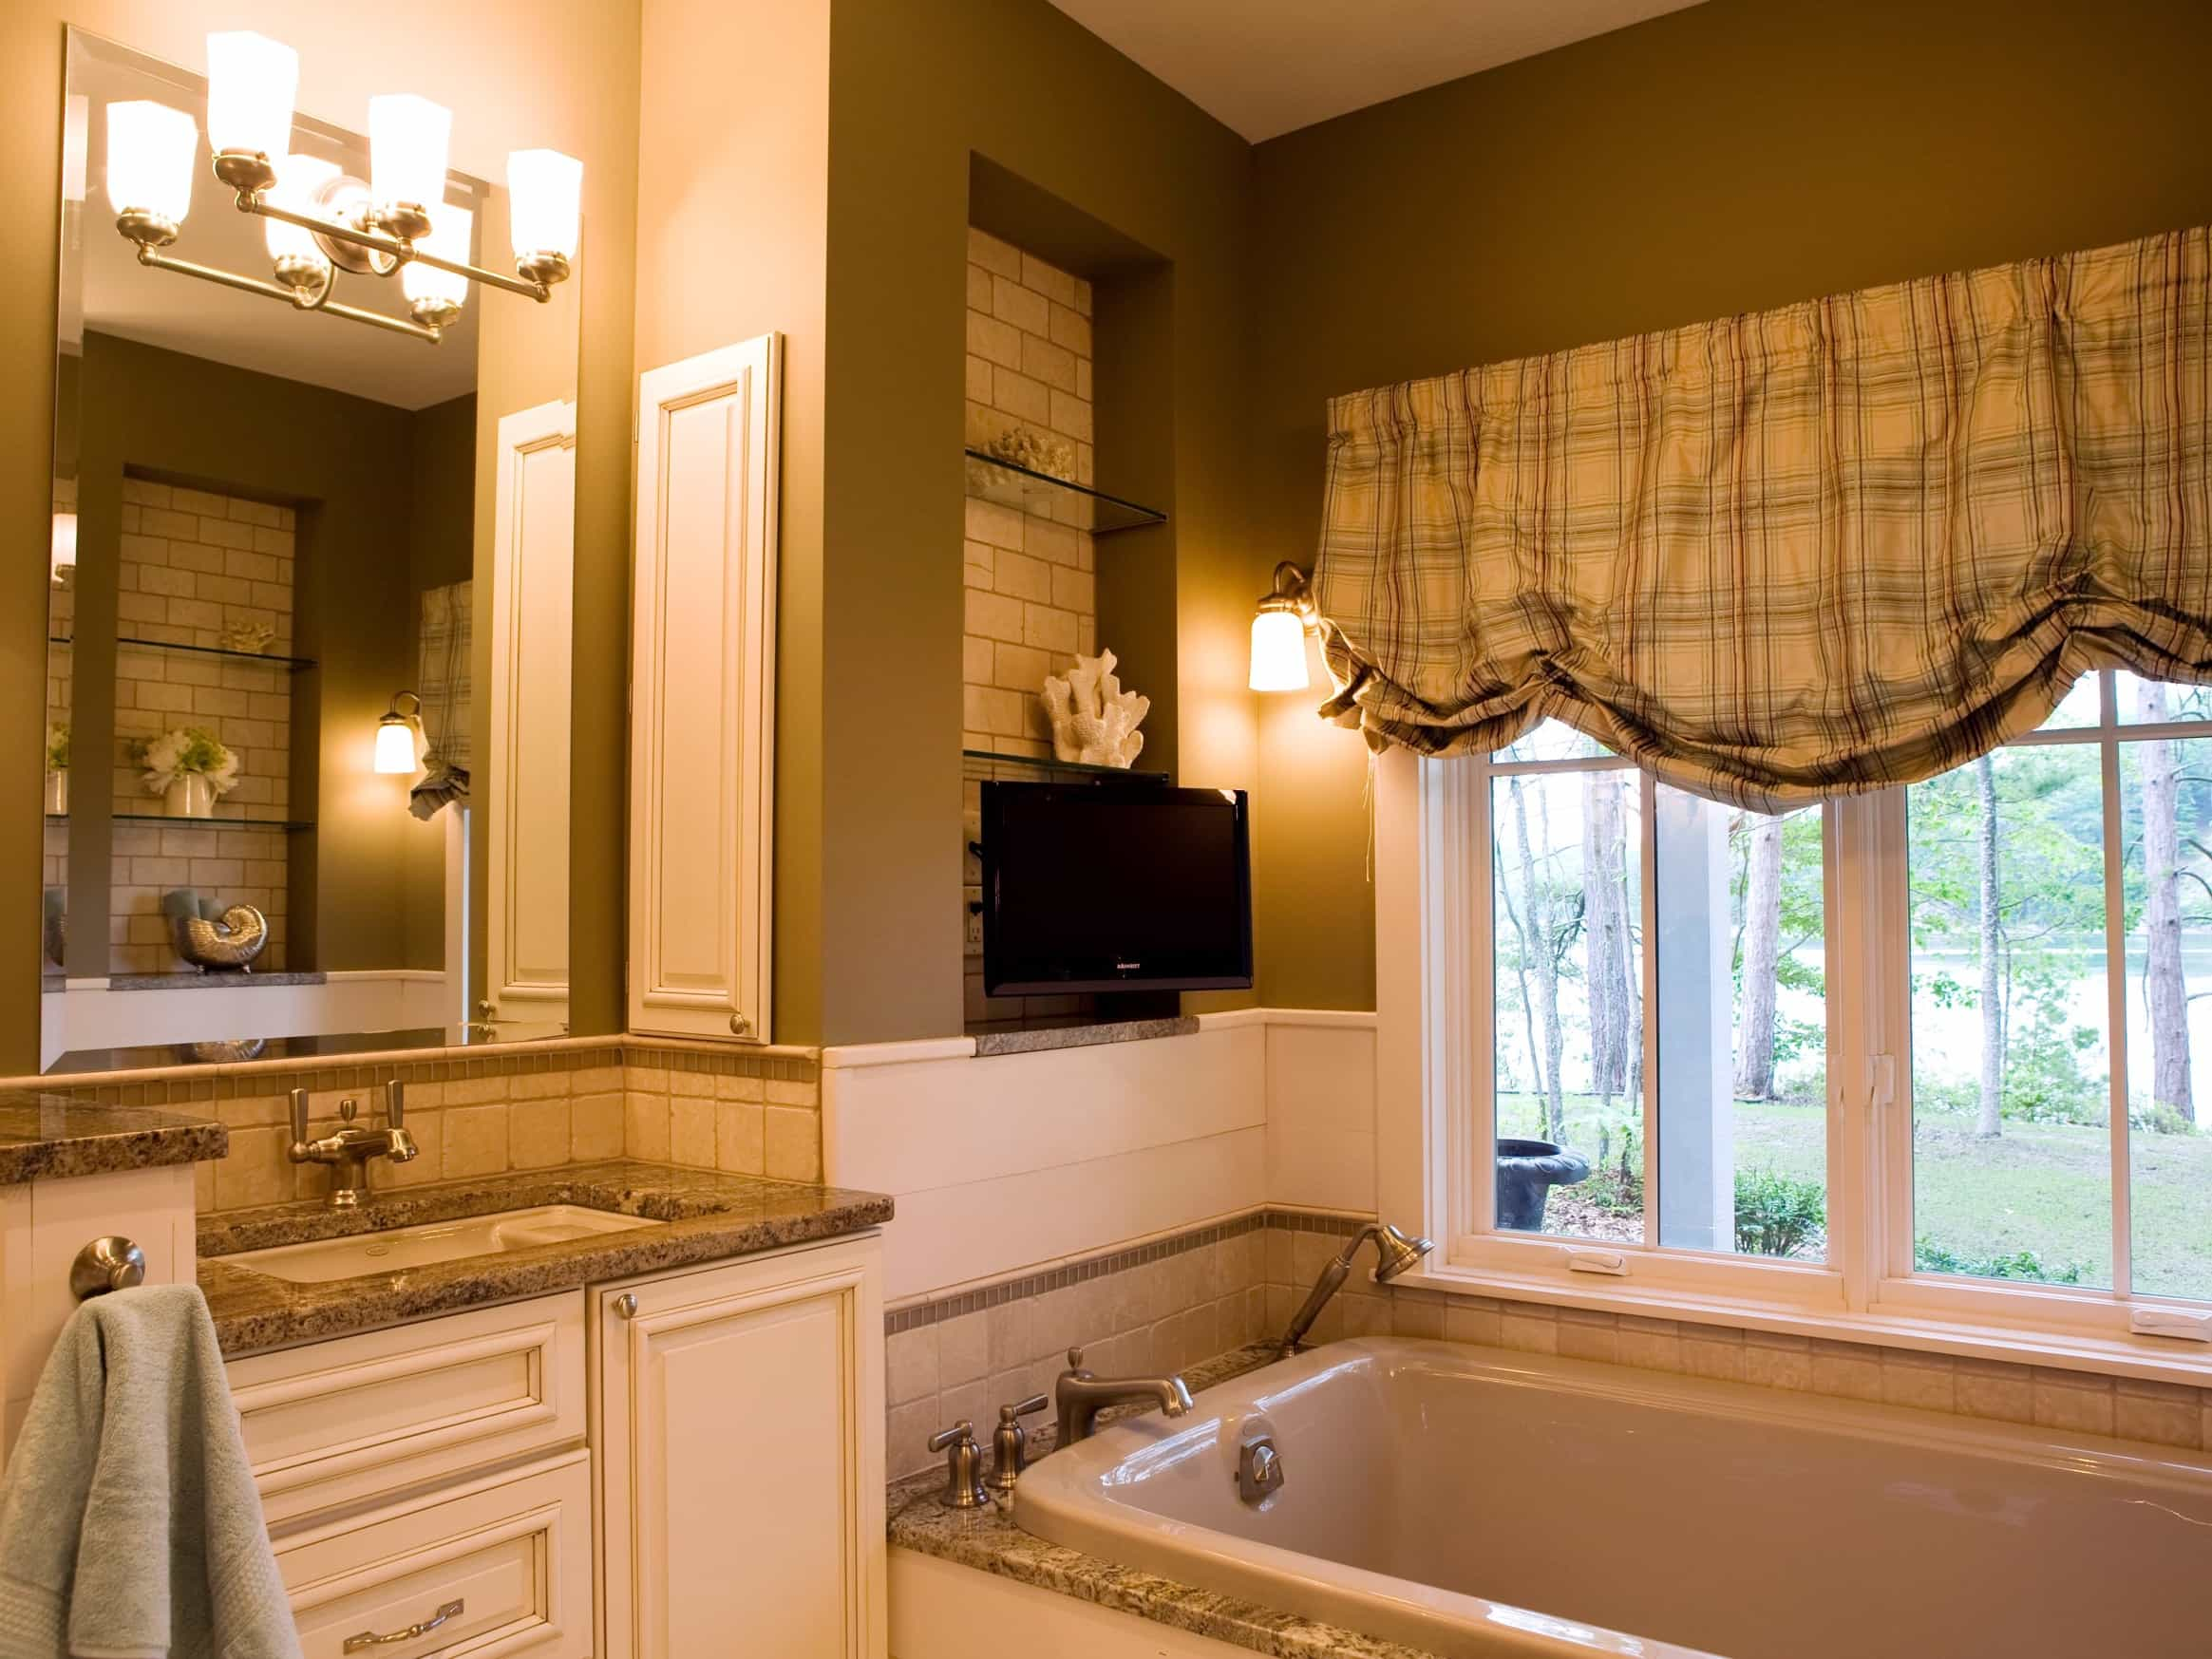 Featured Image of Vintage Bathroom Decor With Wall Mounted Flat Screen TV